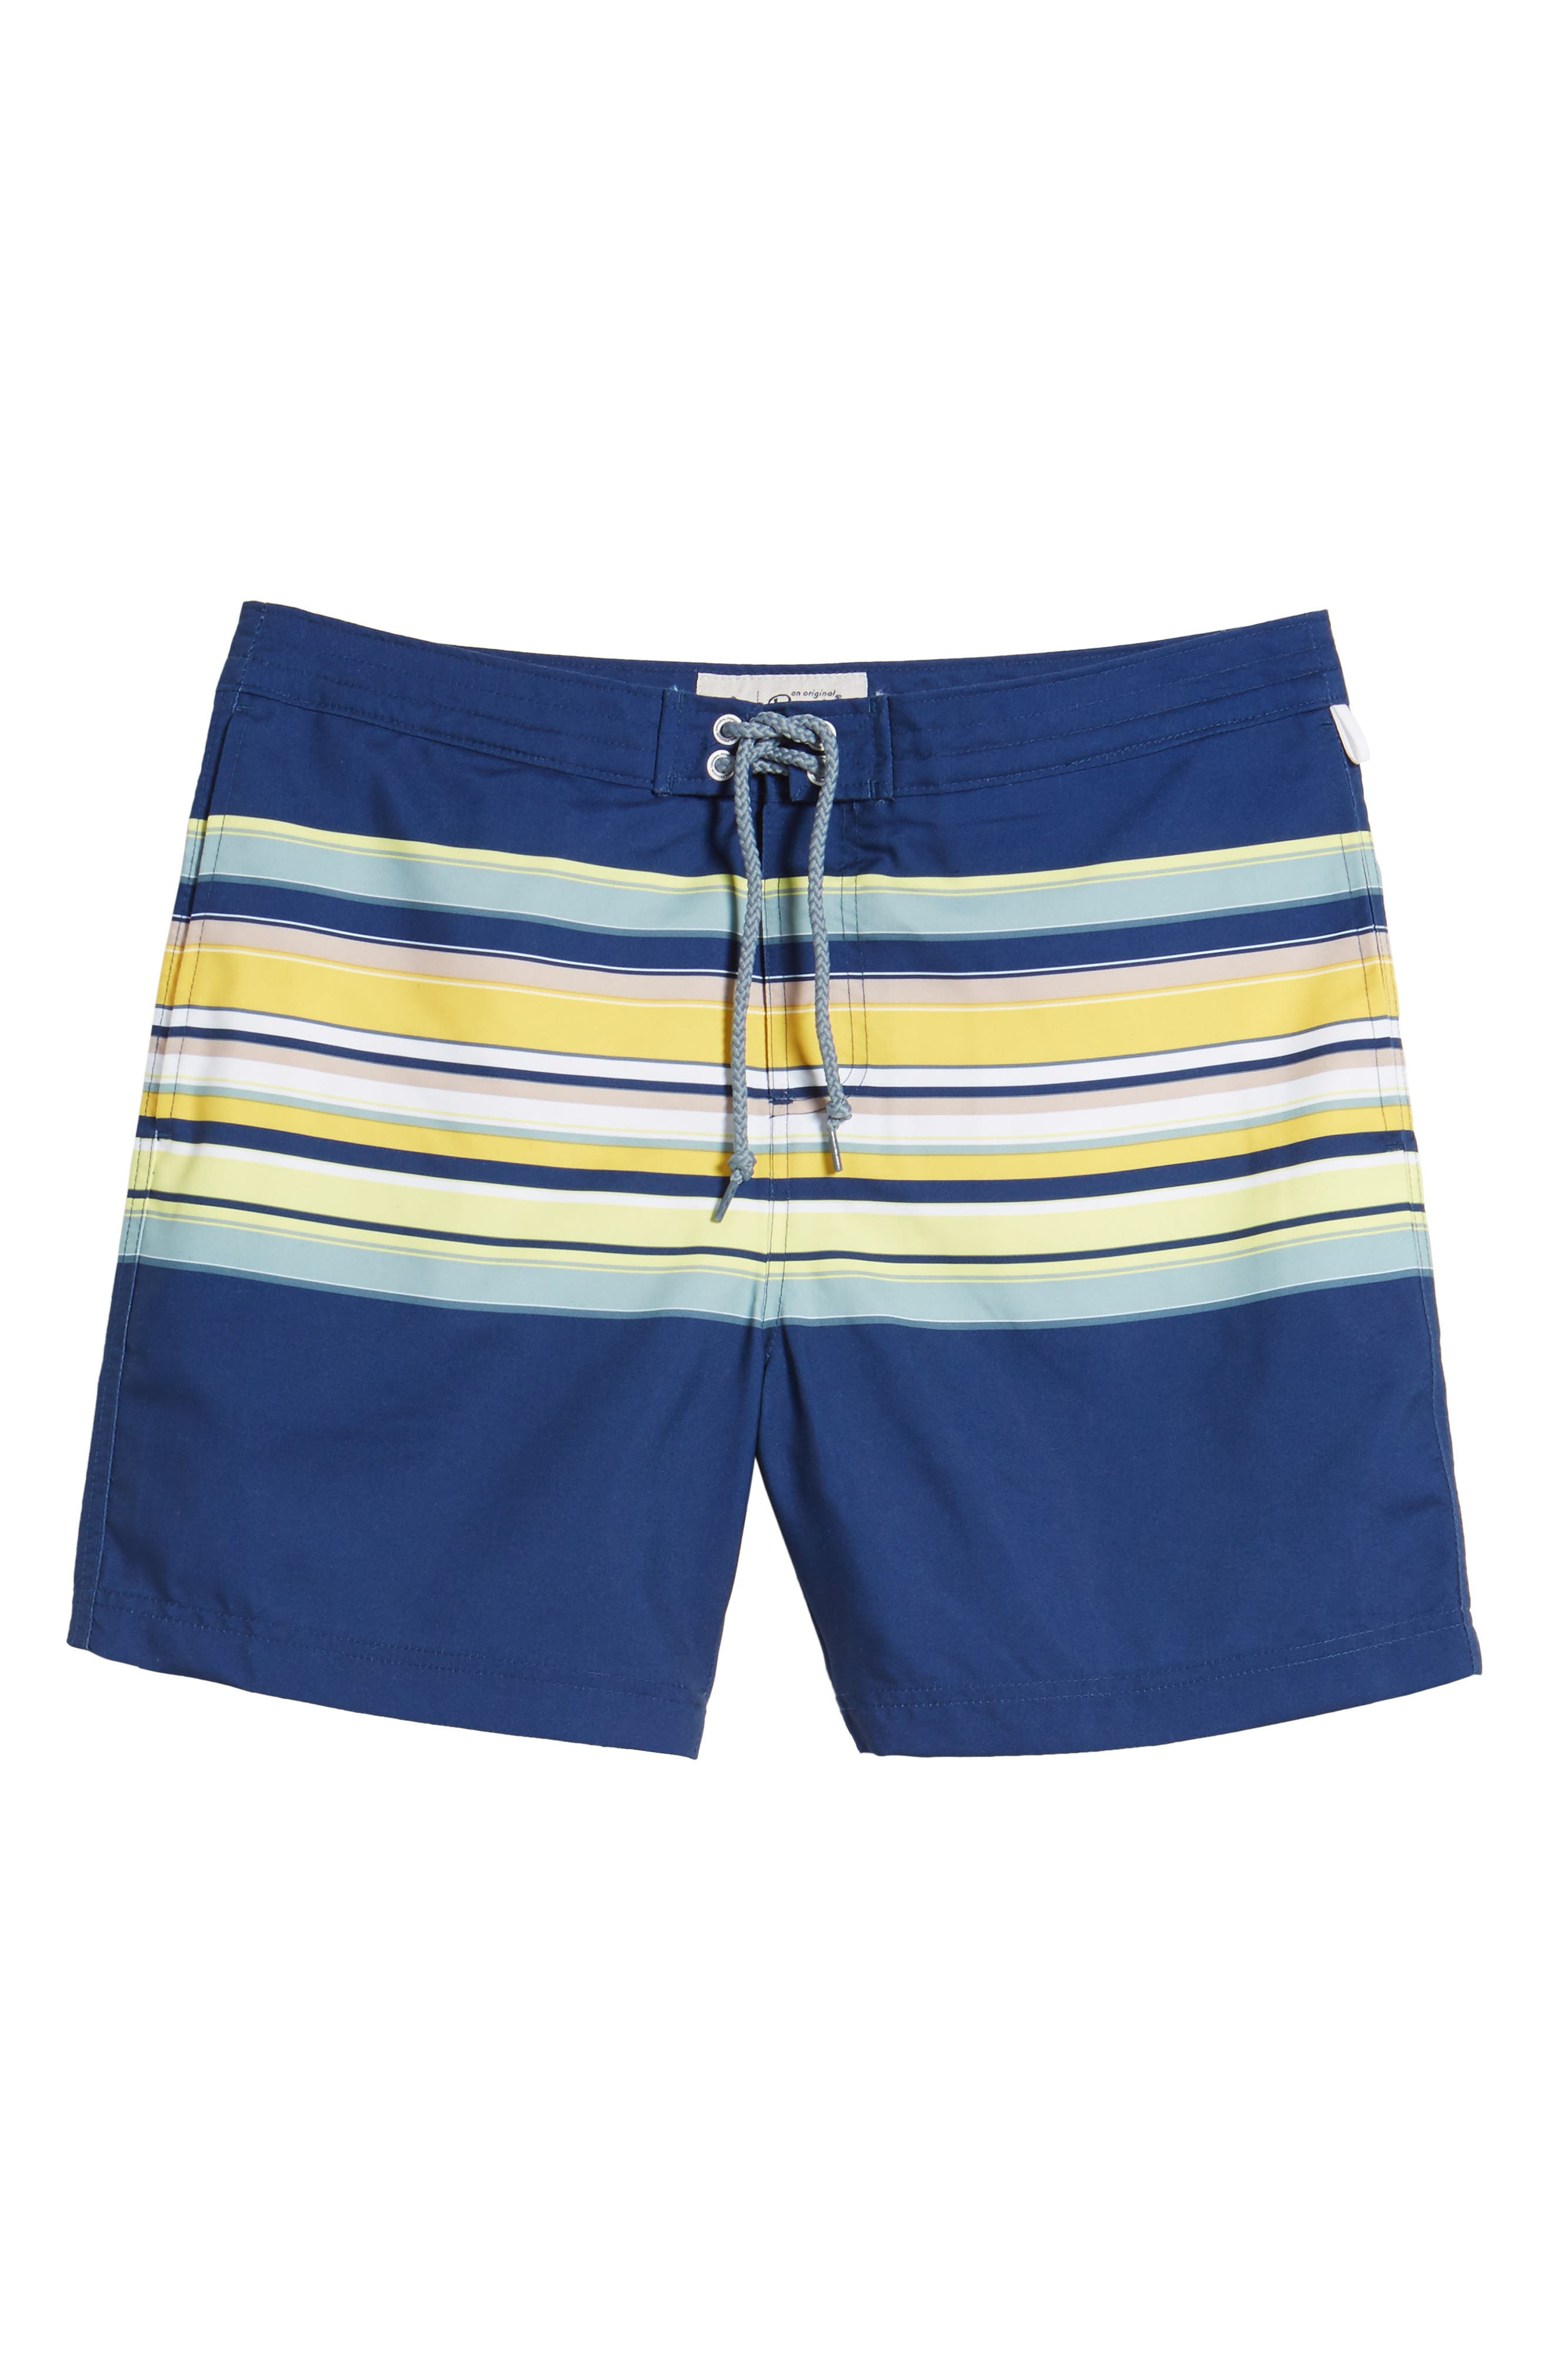 Stripe Fixed Volley Board Shorts,                             Alternate thumbnail 6, color,                             469